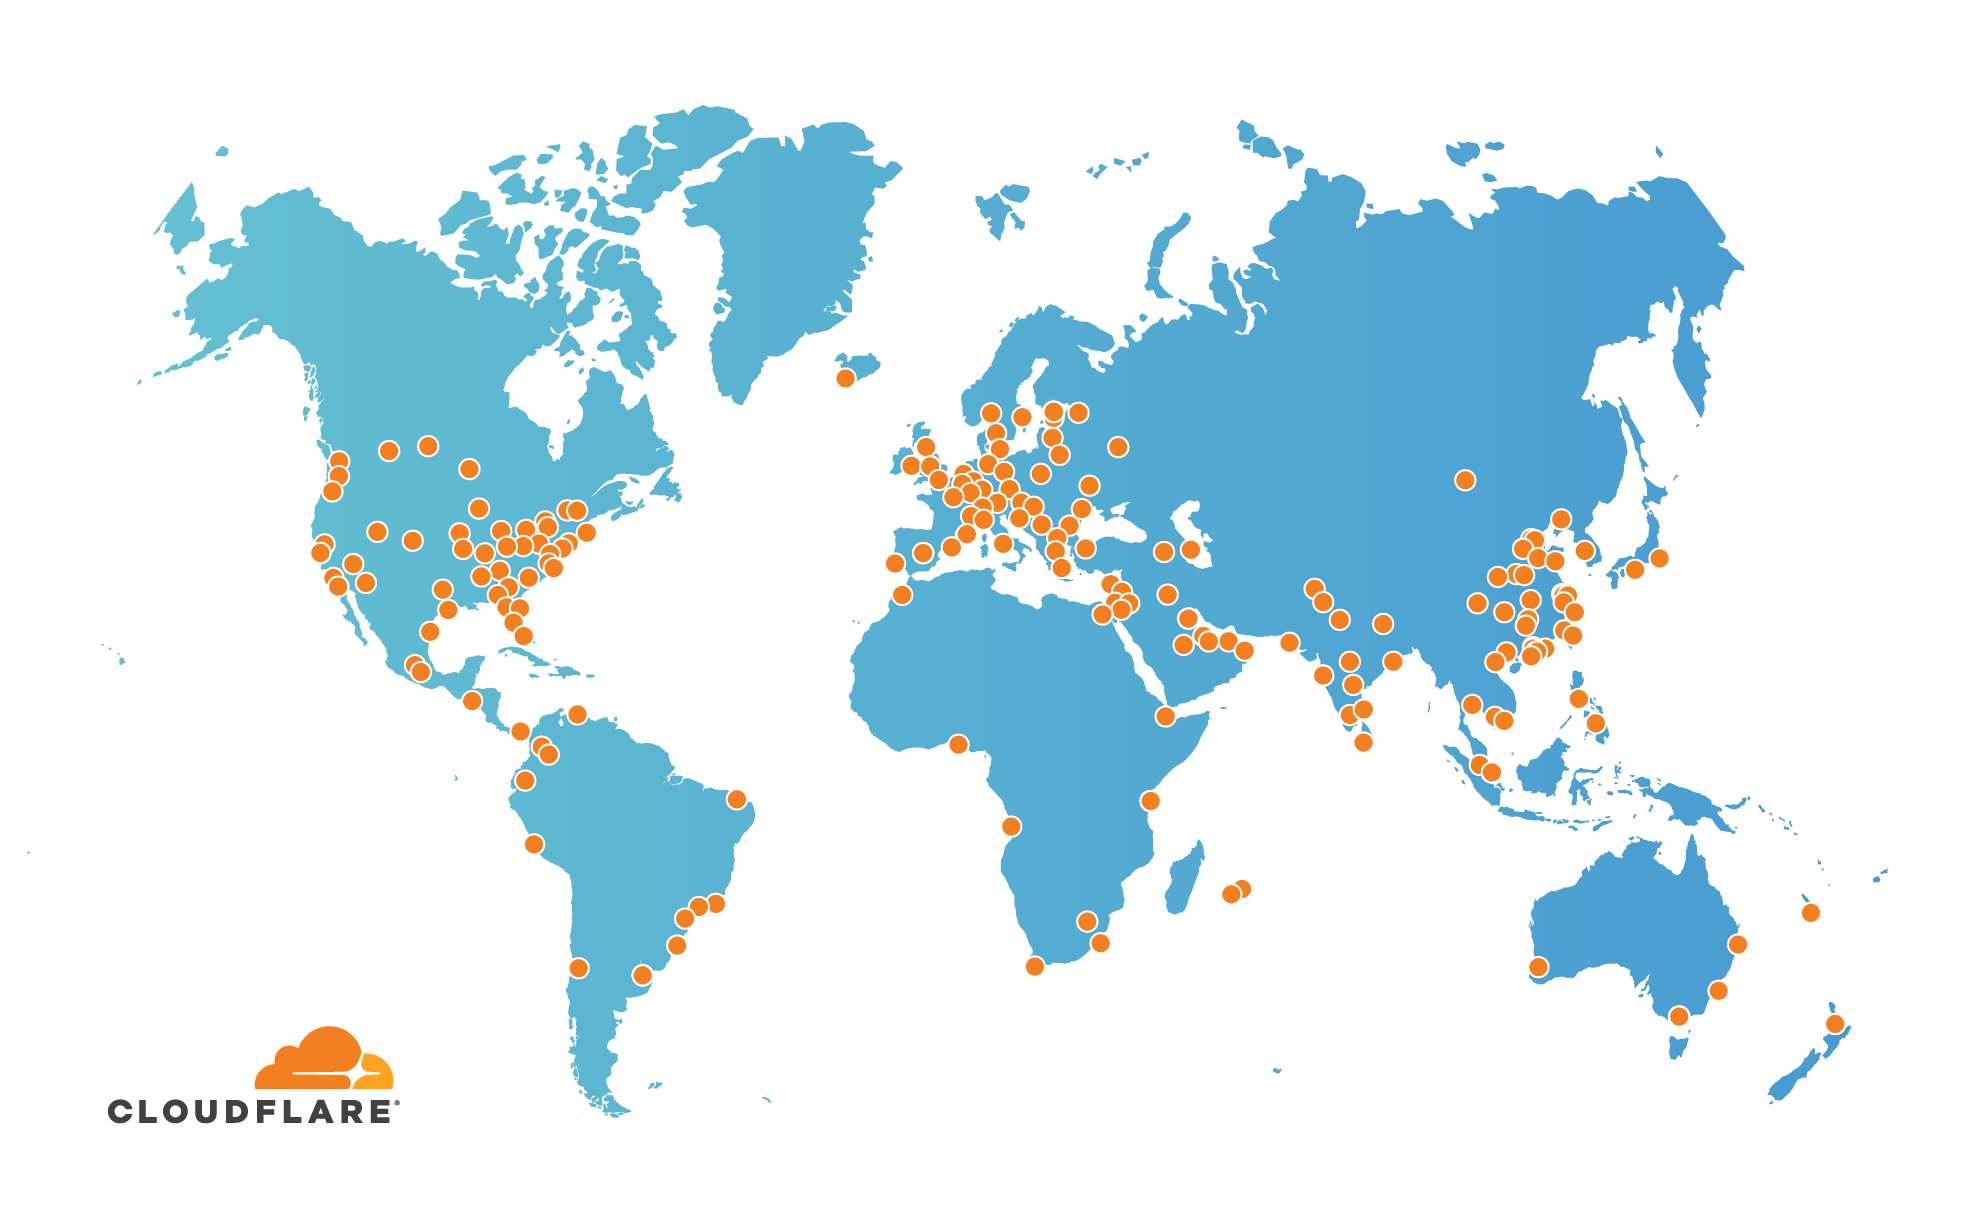 Cloudflare Global Network Expands to 193 Cities